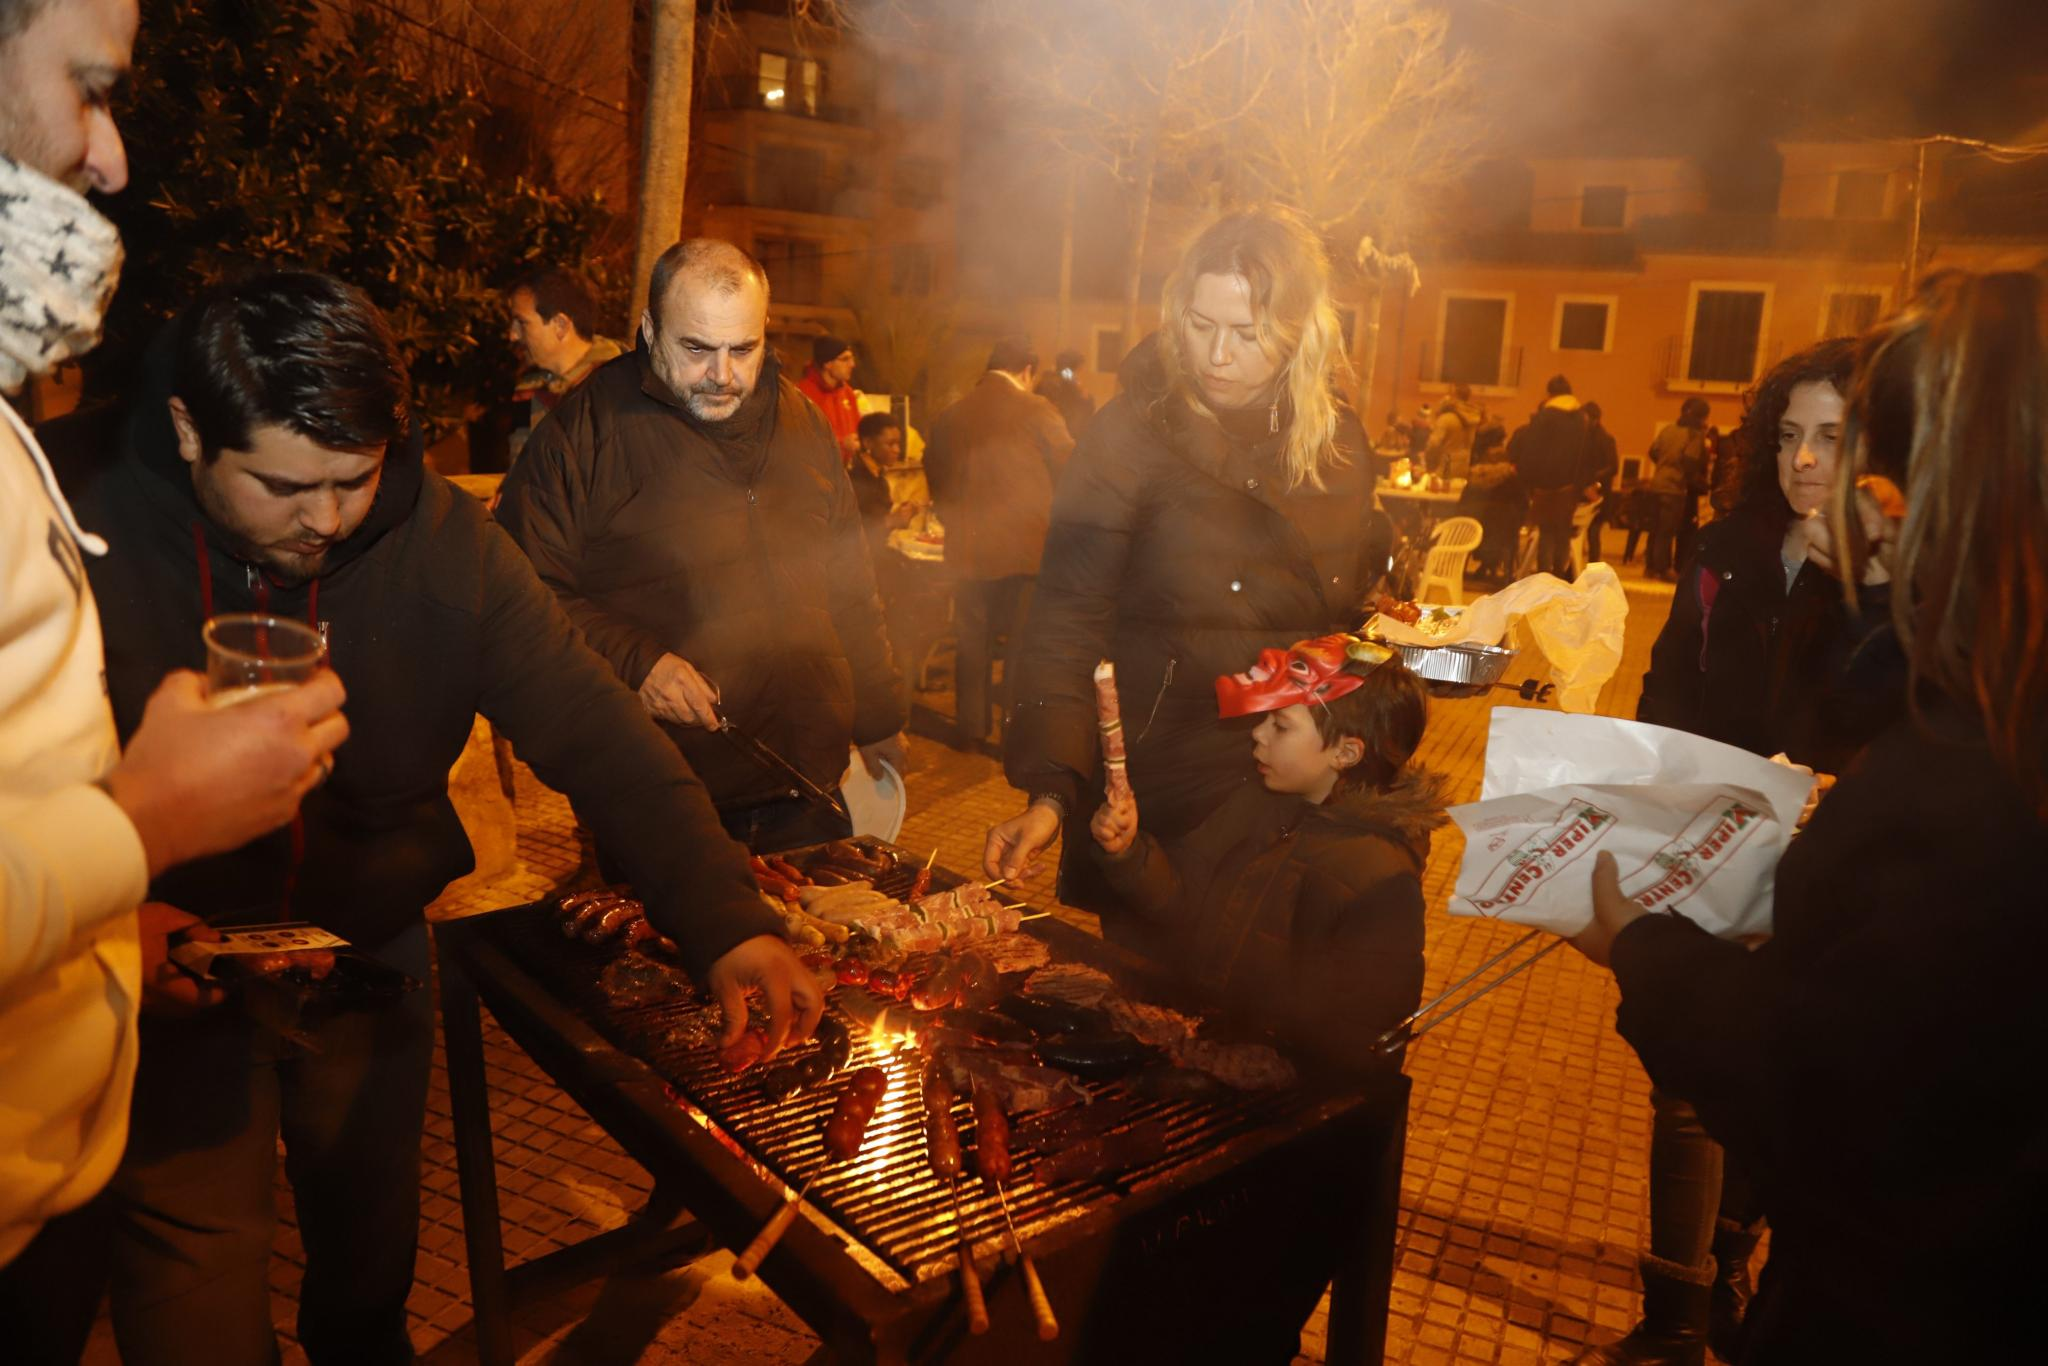 There will be many barbecue sites for Sant Antoni